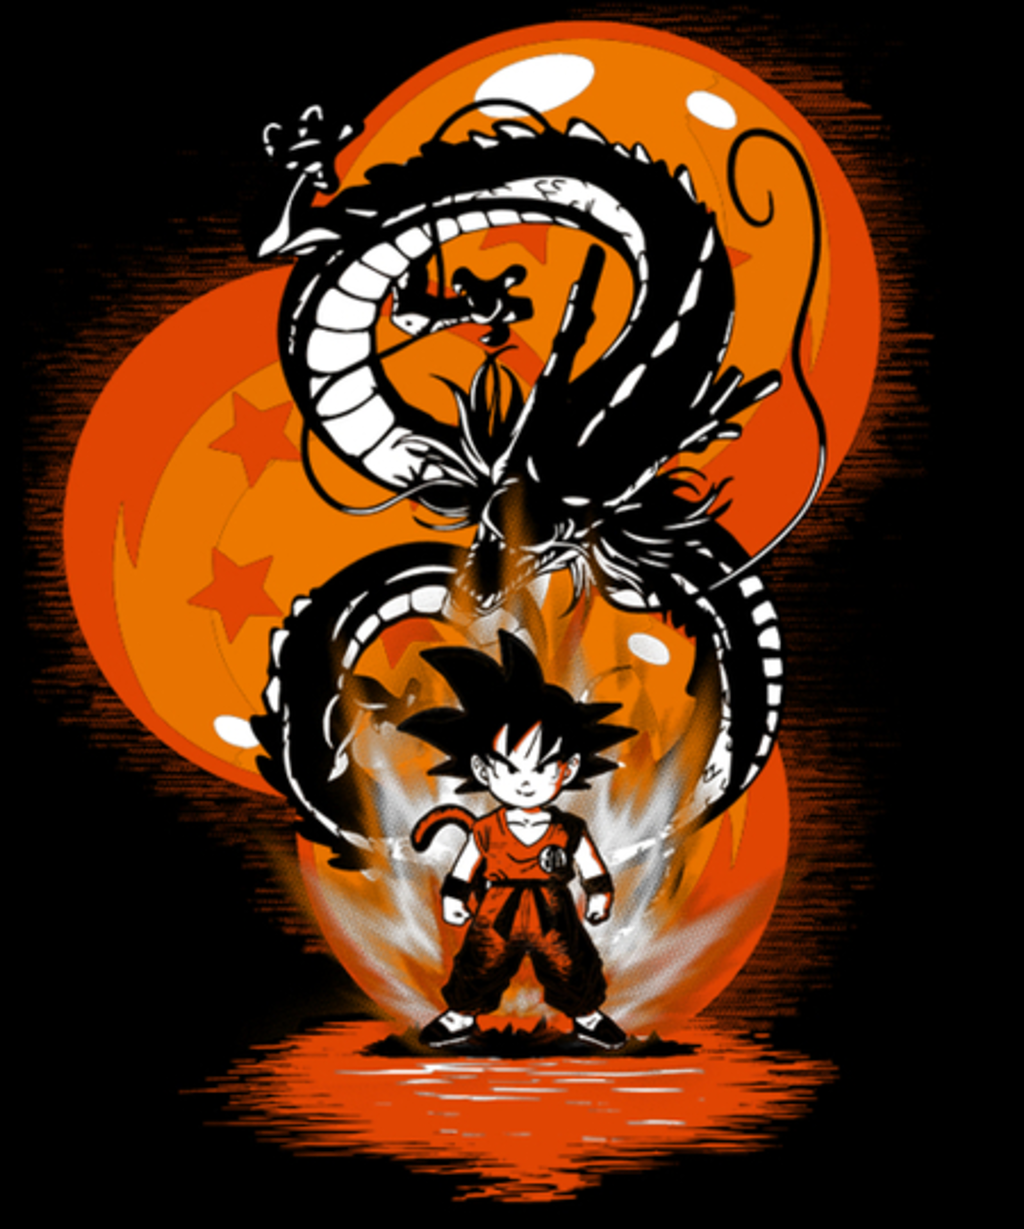 Qwertee: Boy with the Dragon